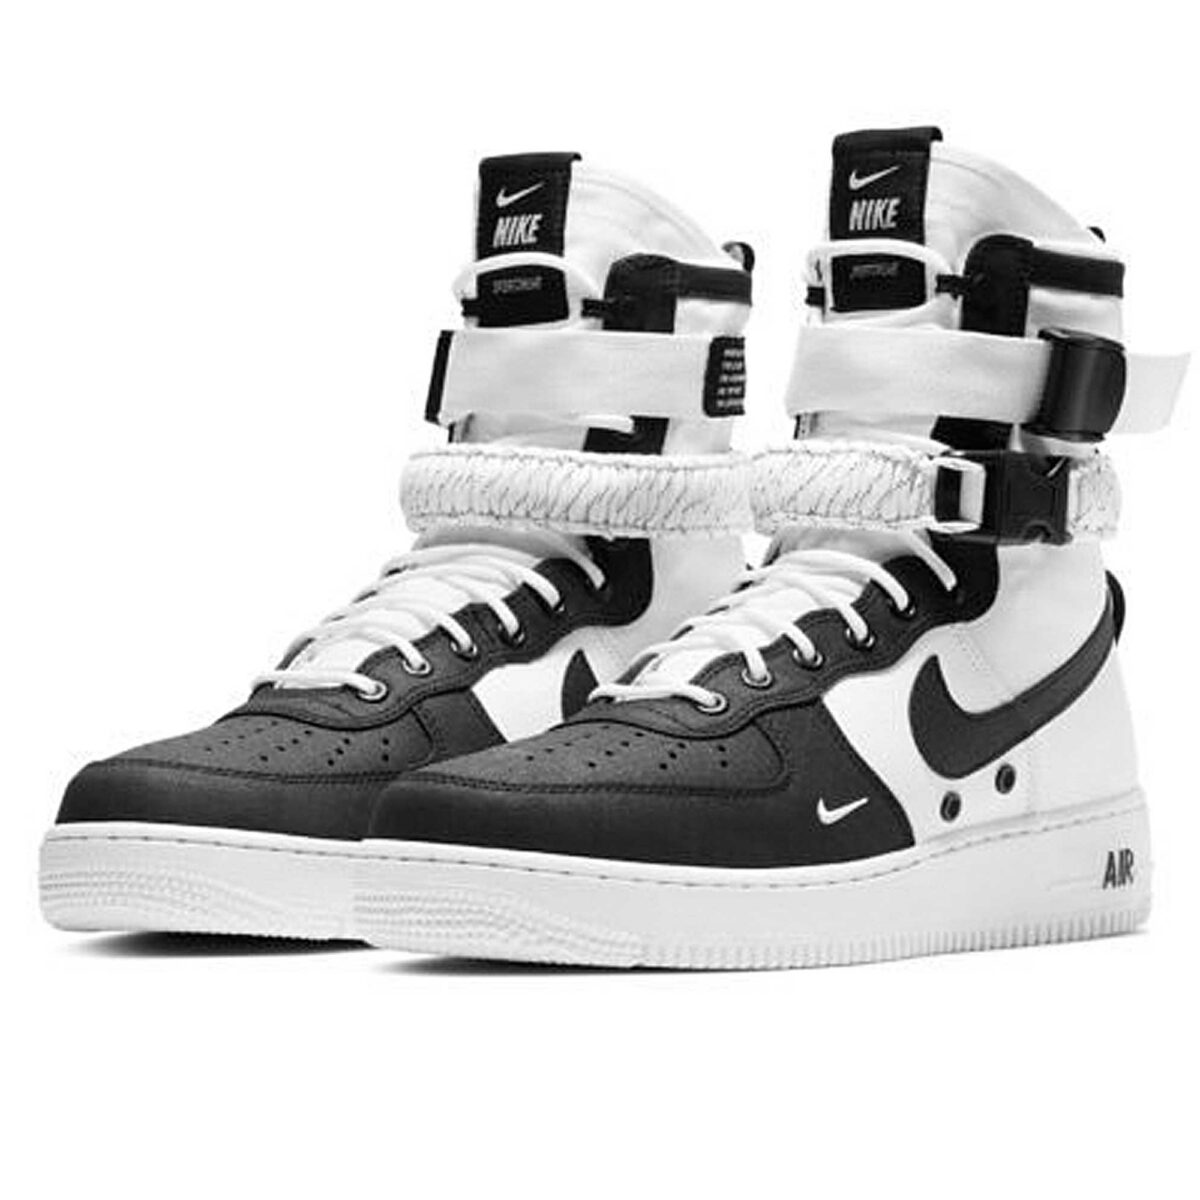 nike sf air force 1 black white купить